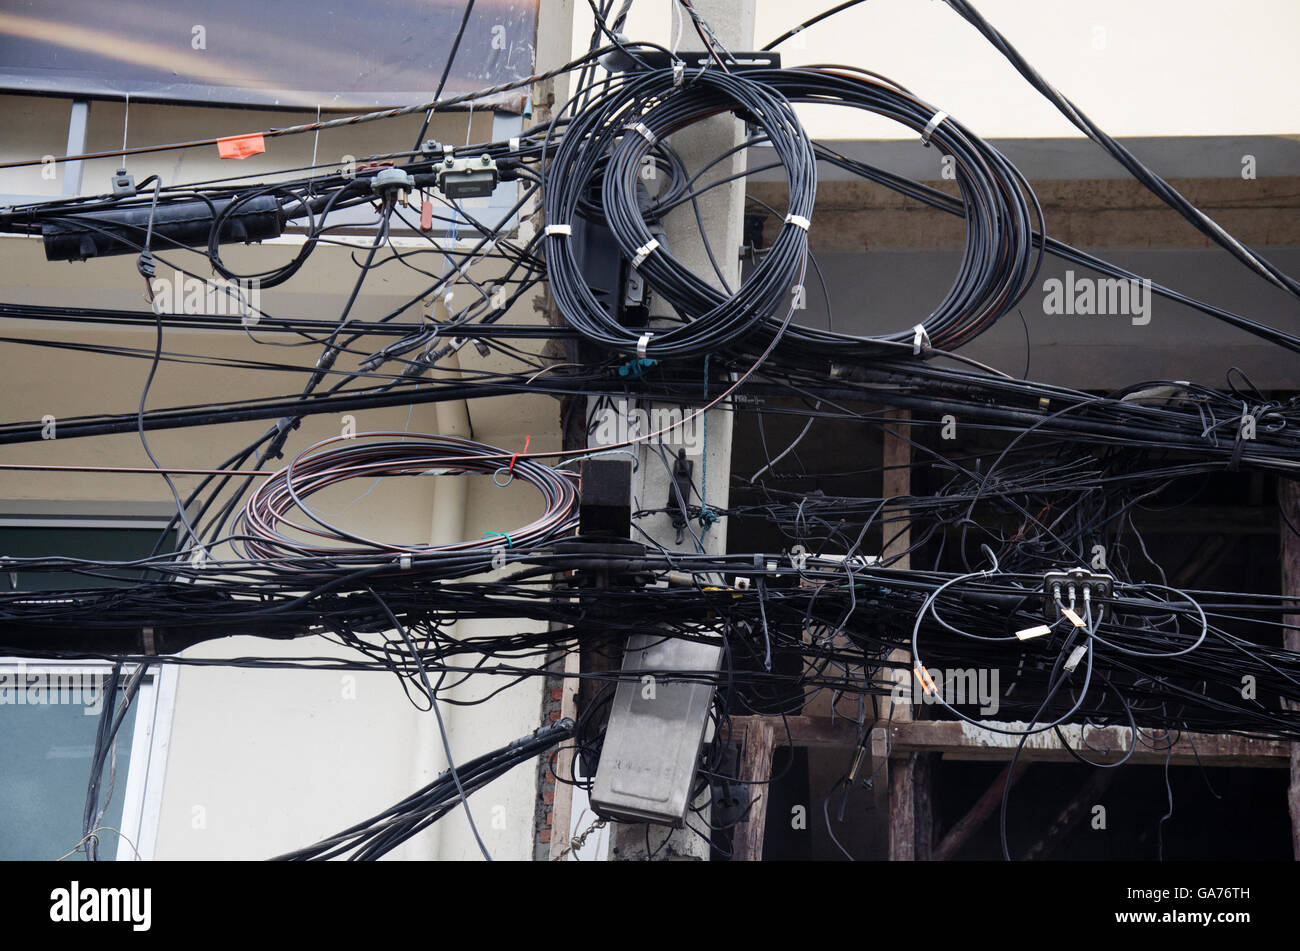 Old Wiring Closet Diagram And Ebooks Messy Free For You U2022 Rh Evolvedlife Store Mess Nightmare